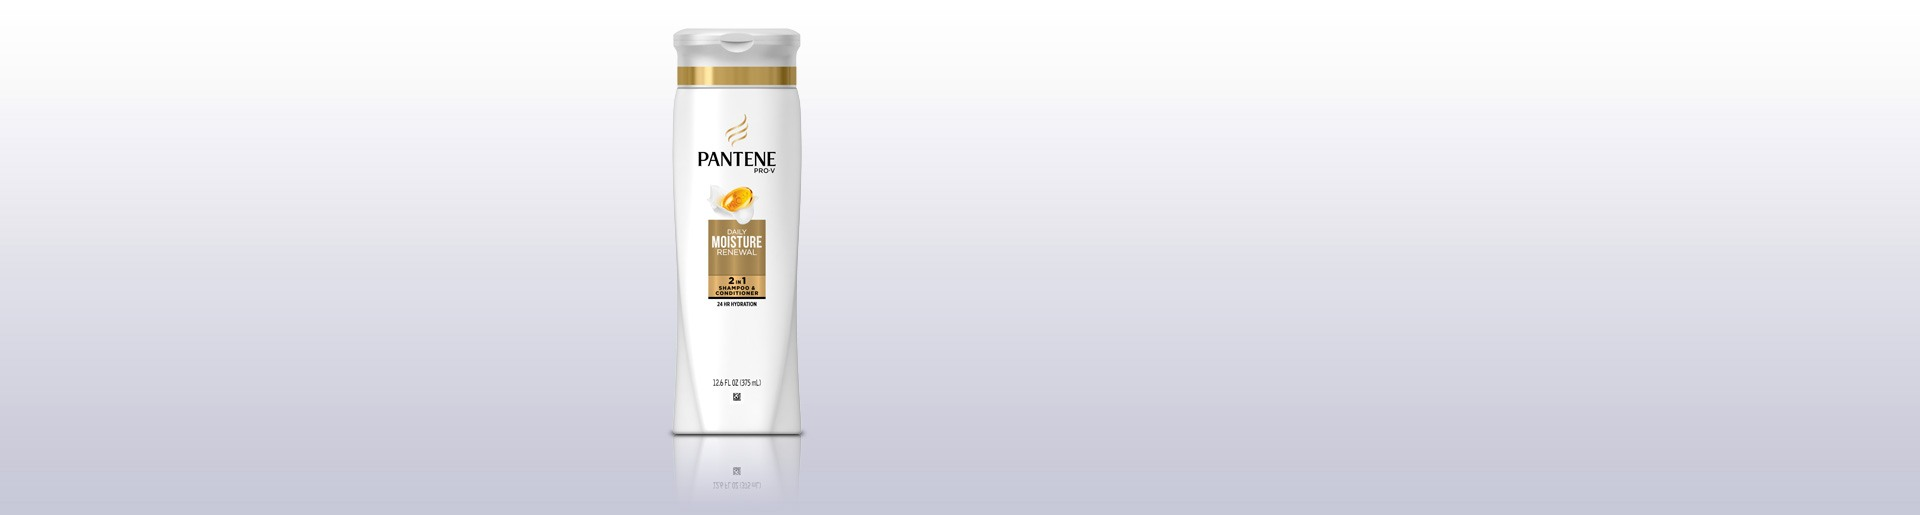 2 In 1 Shampoo Conditioner Pantene Sampo Total Damage Care 480ml Worlds Experience Pantenes Extraordinary